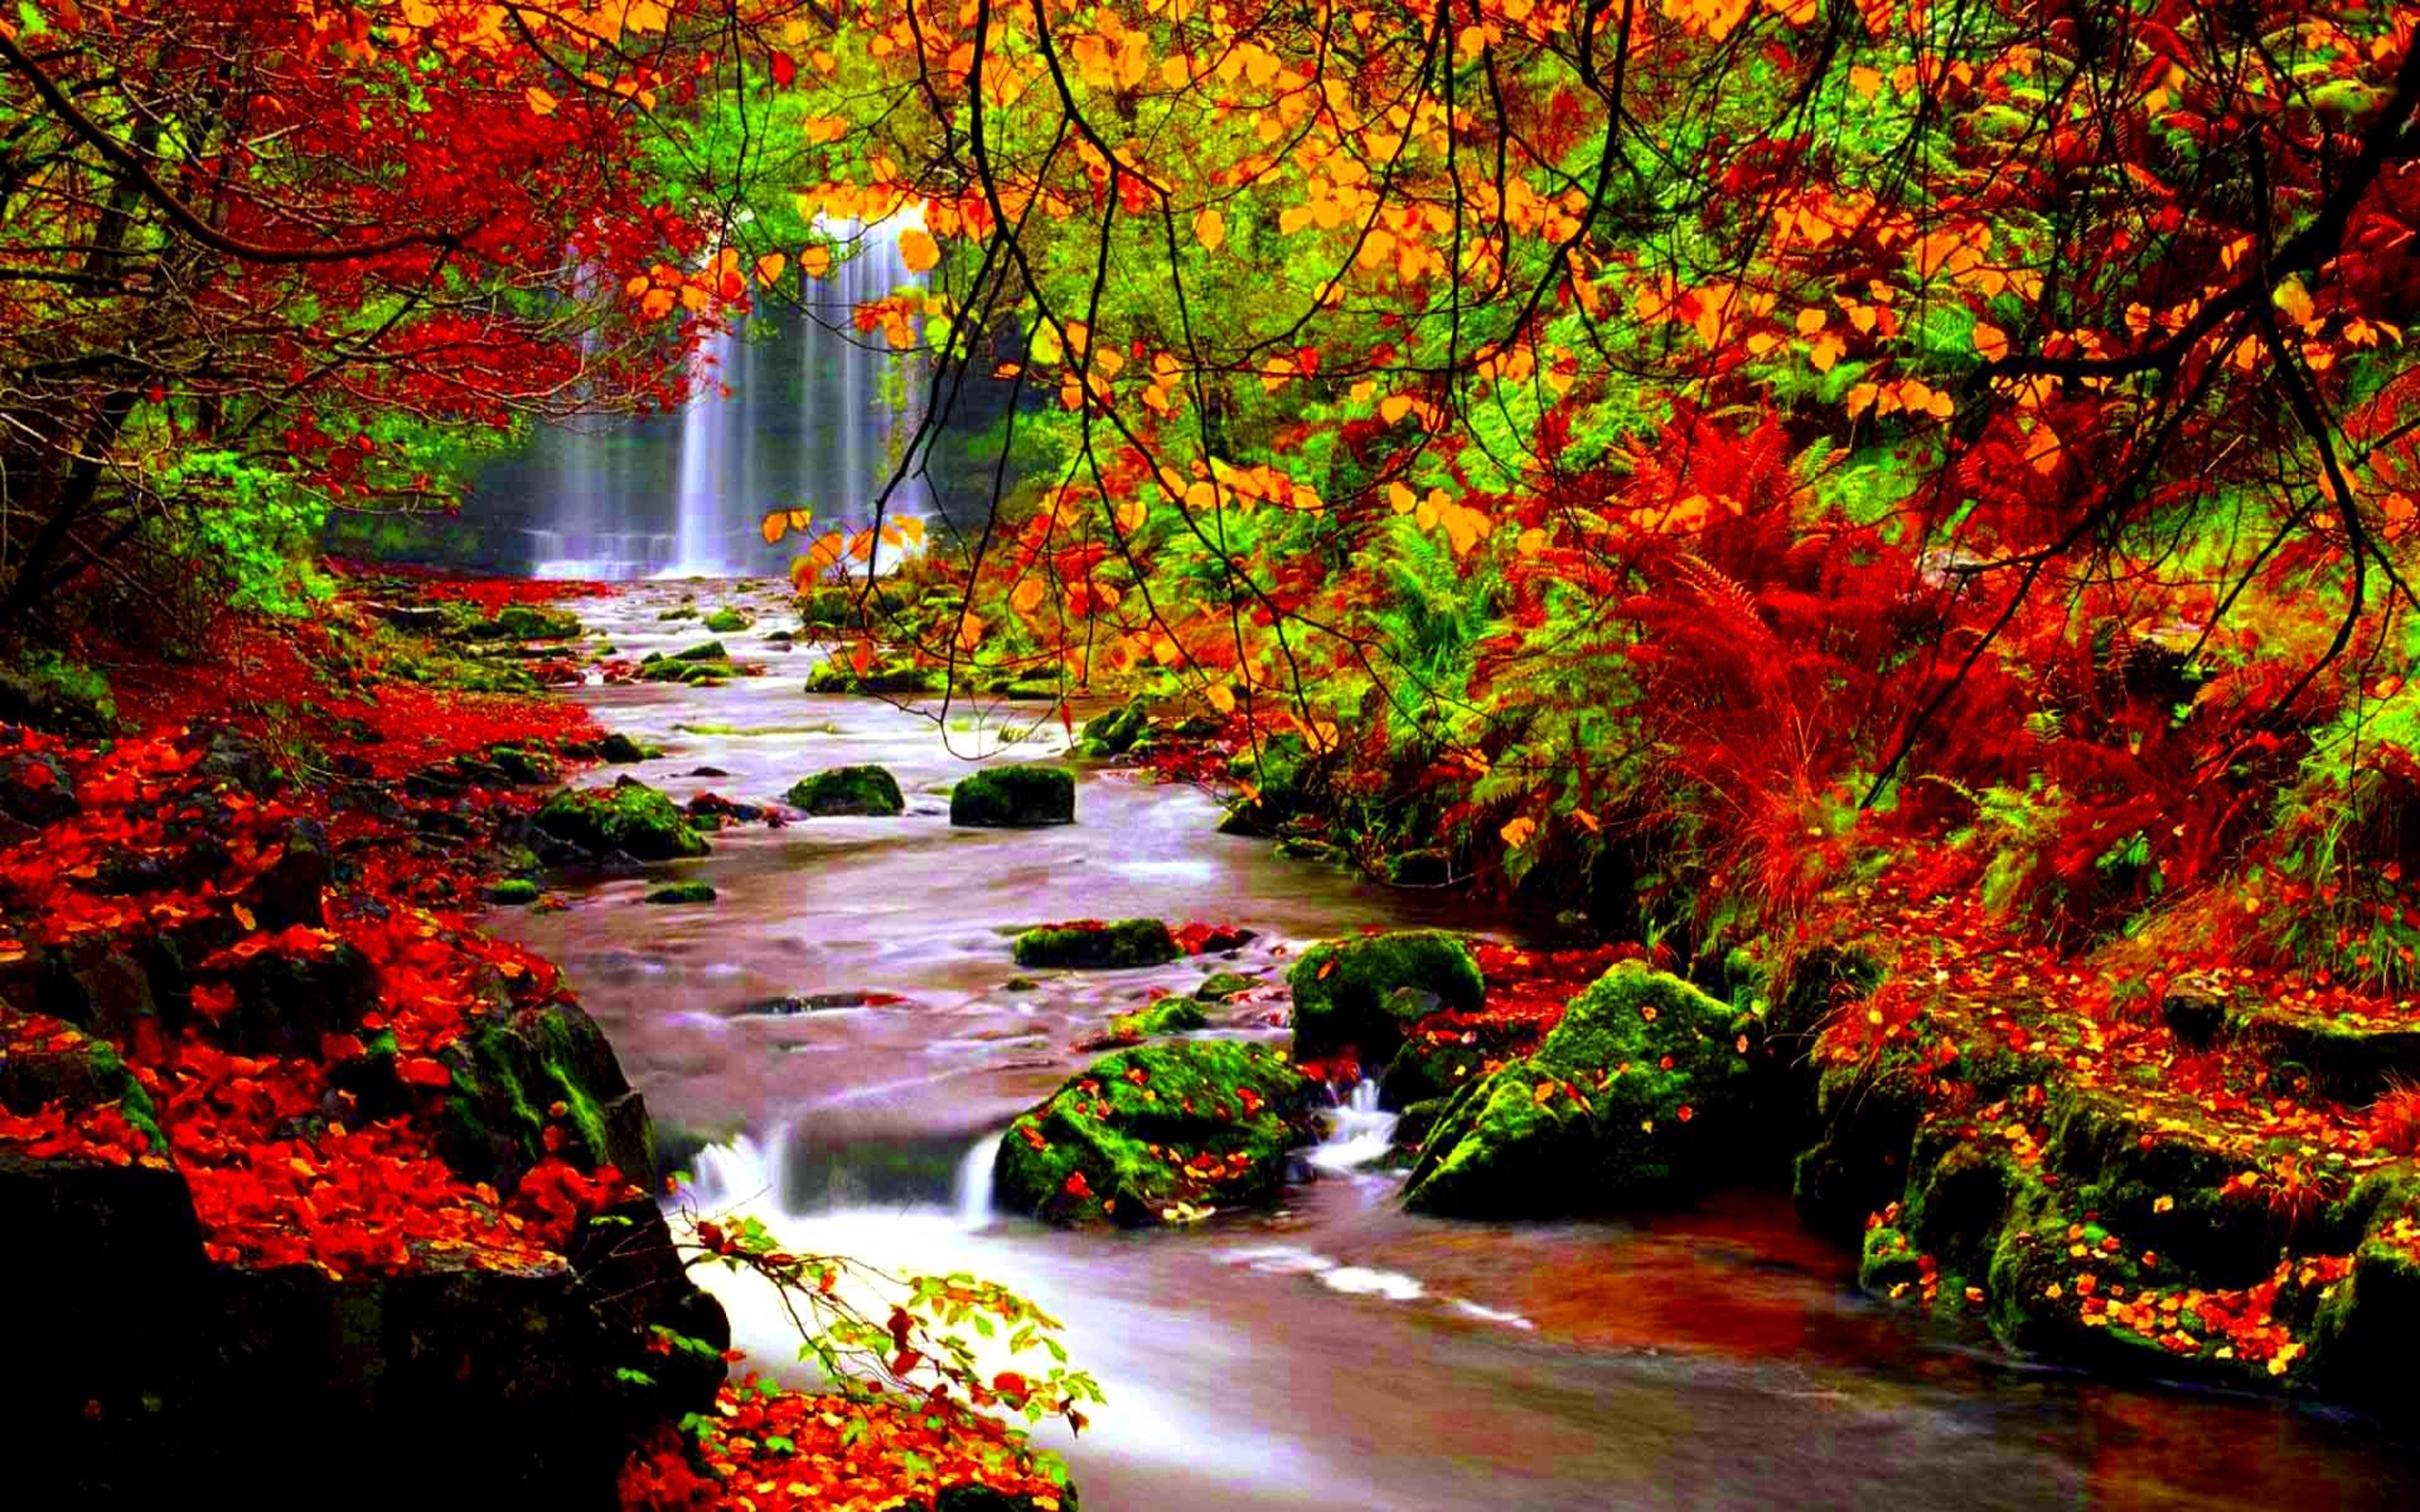 Falling Leaves Live Wallpaper For Android Autumn Scenery Stream River In Autumn Trees With Red